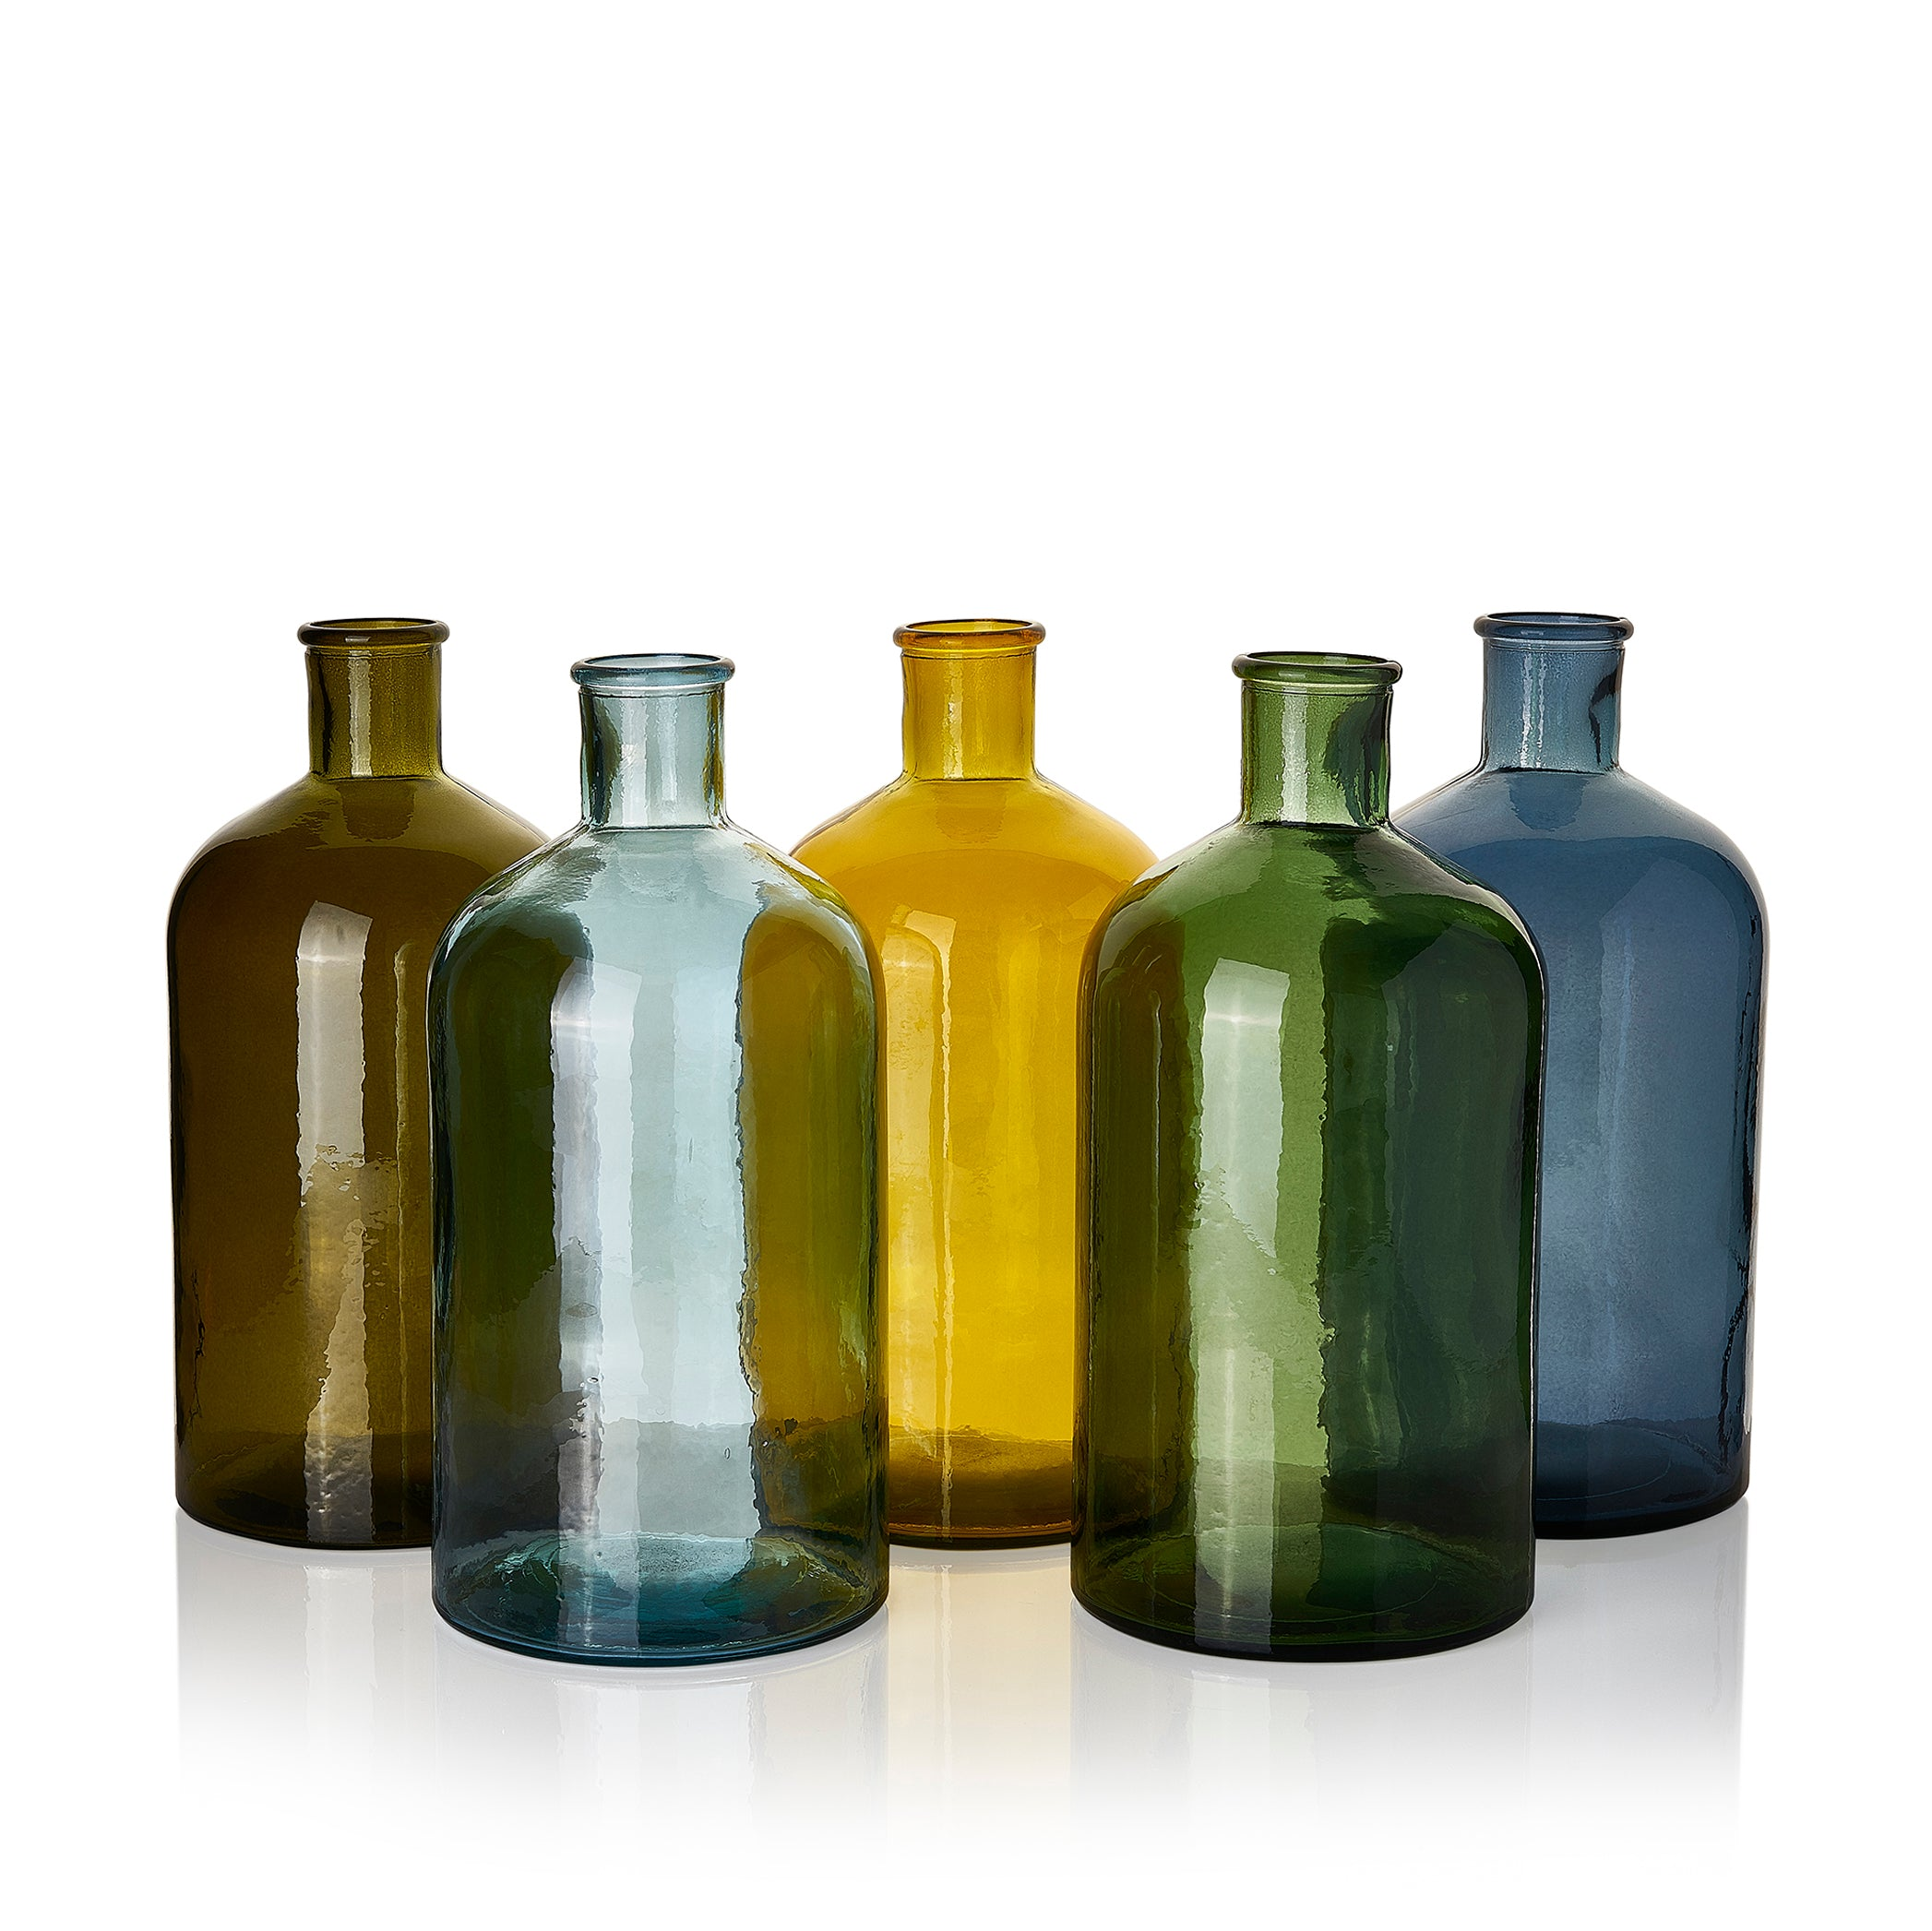 Recycled Glass Bottle in Mustard Yellow, 28cm